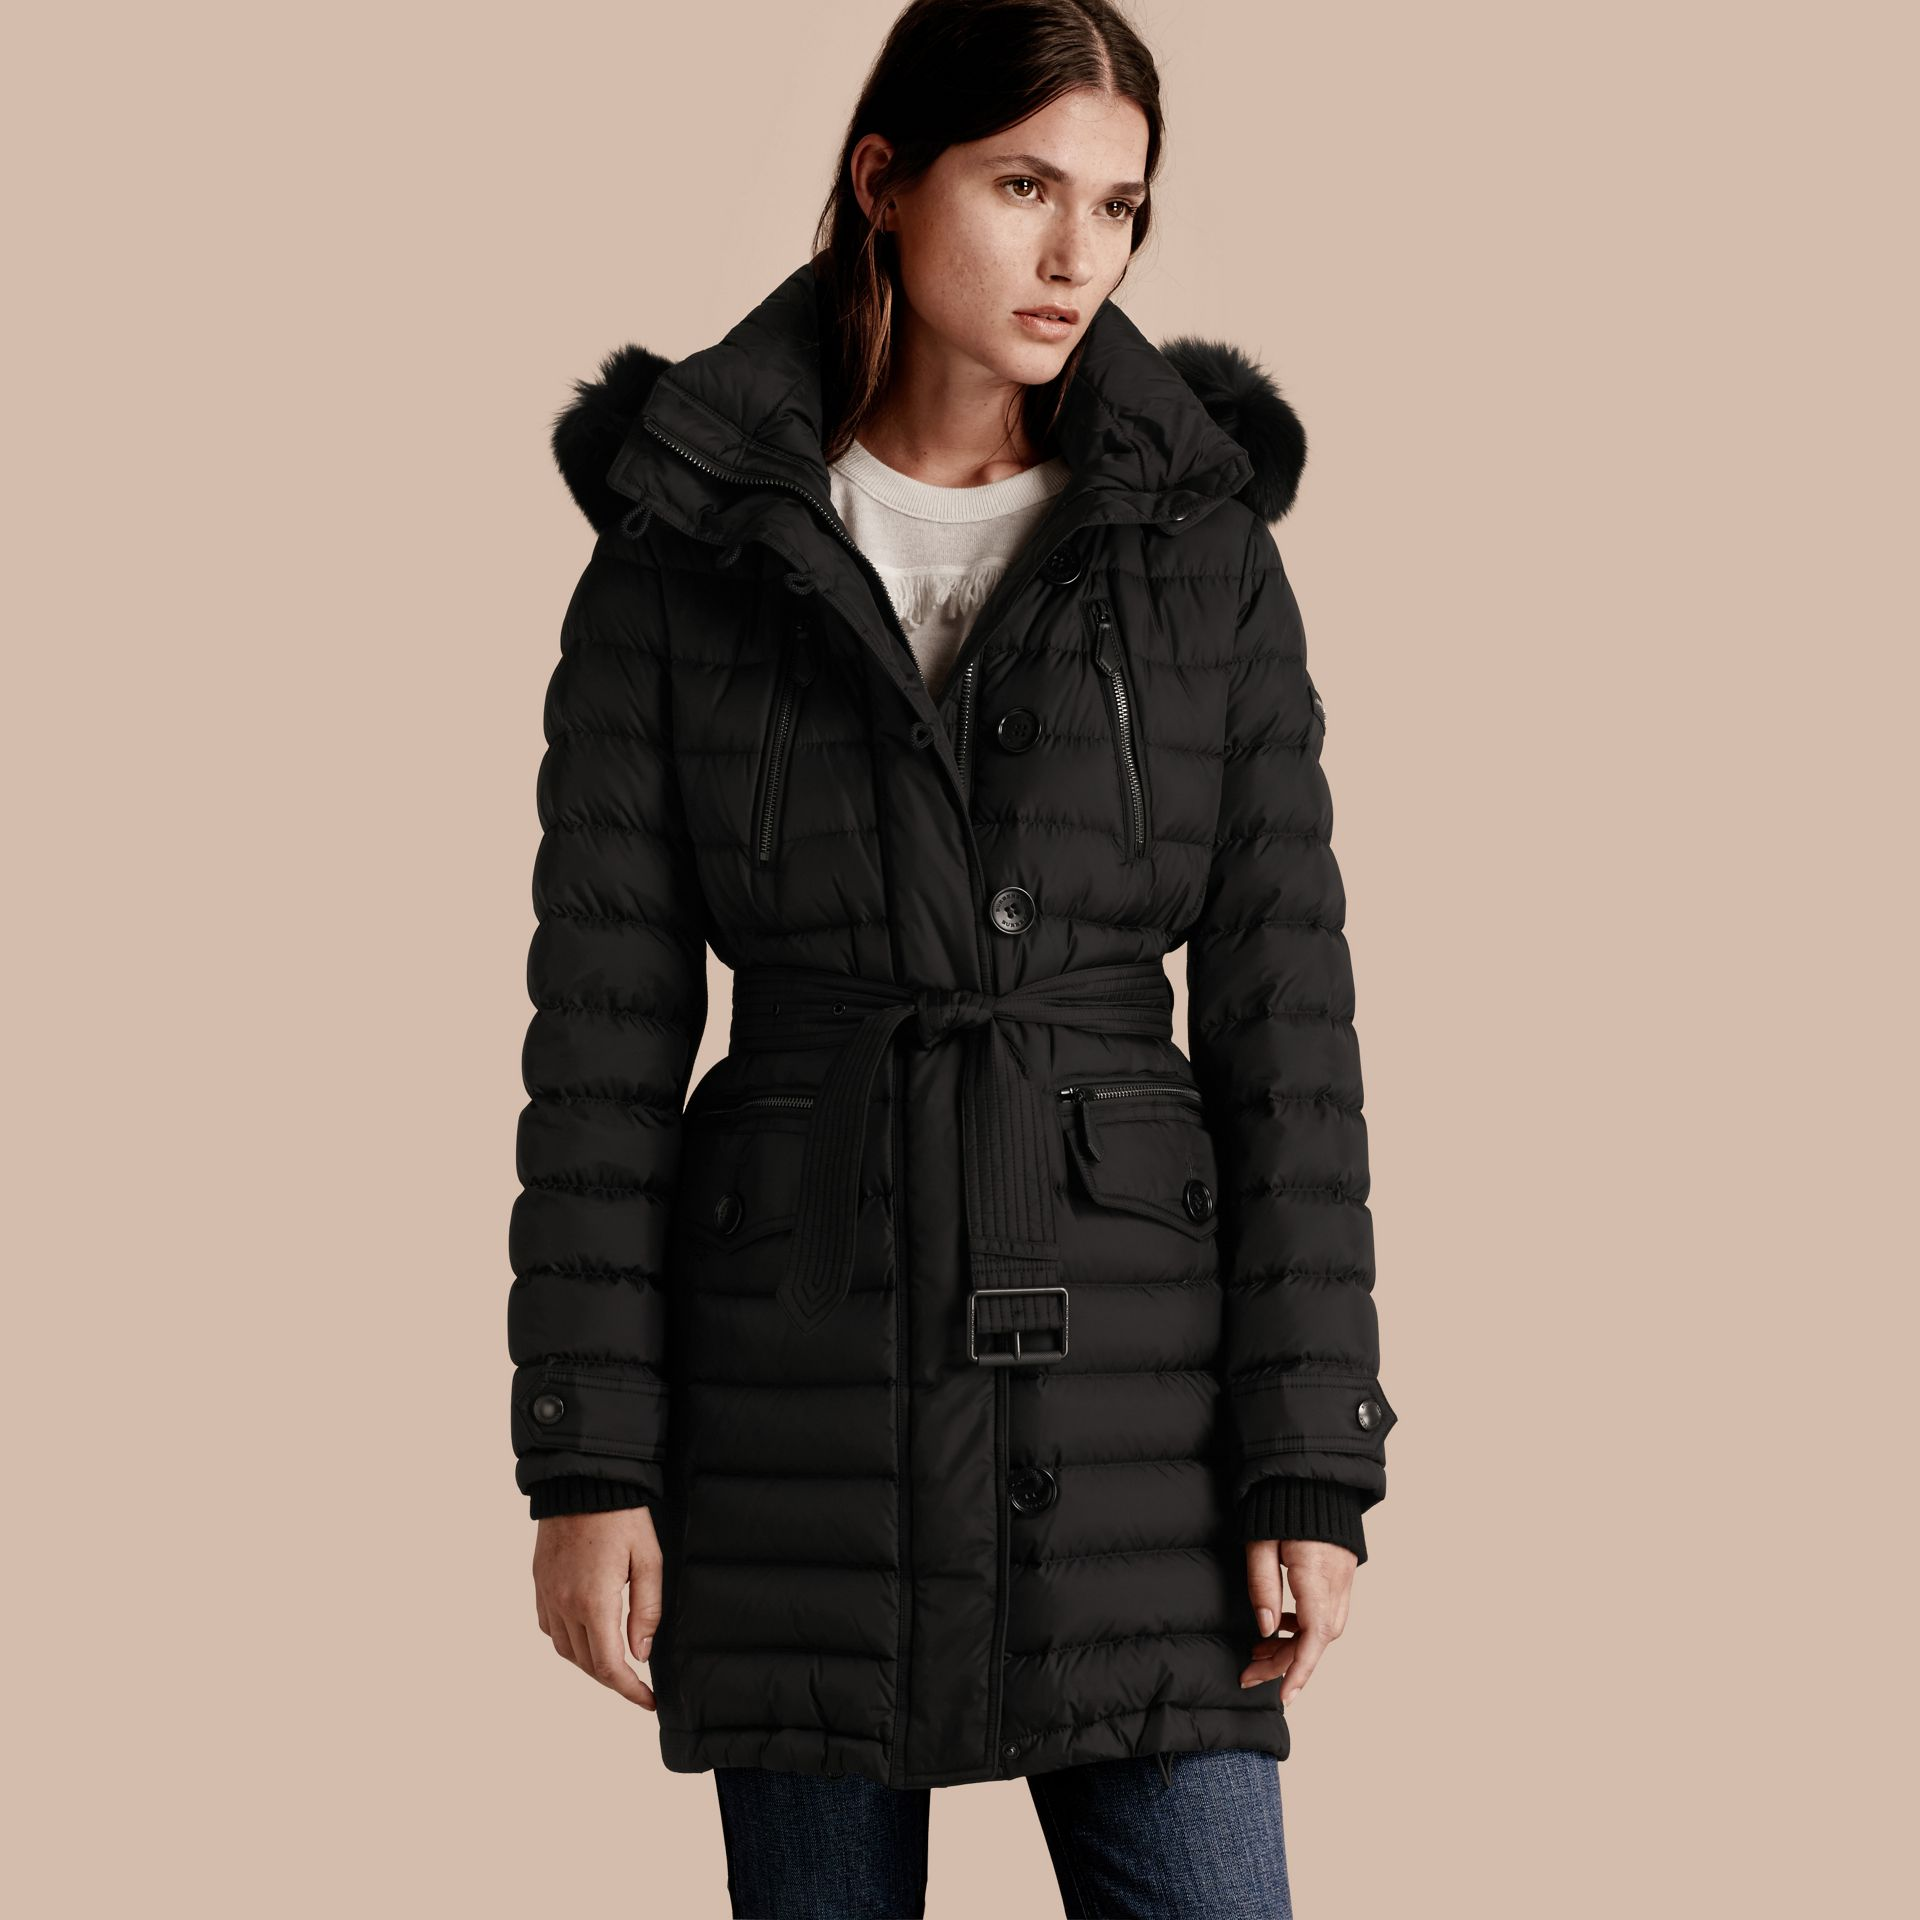 Black Down-filled Parka with Fur Trim Black - gallery image 1